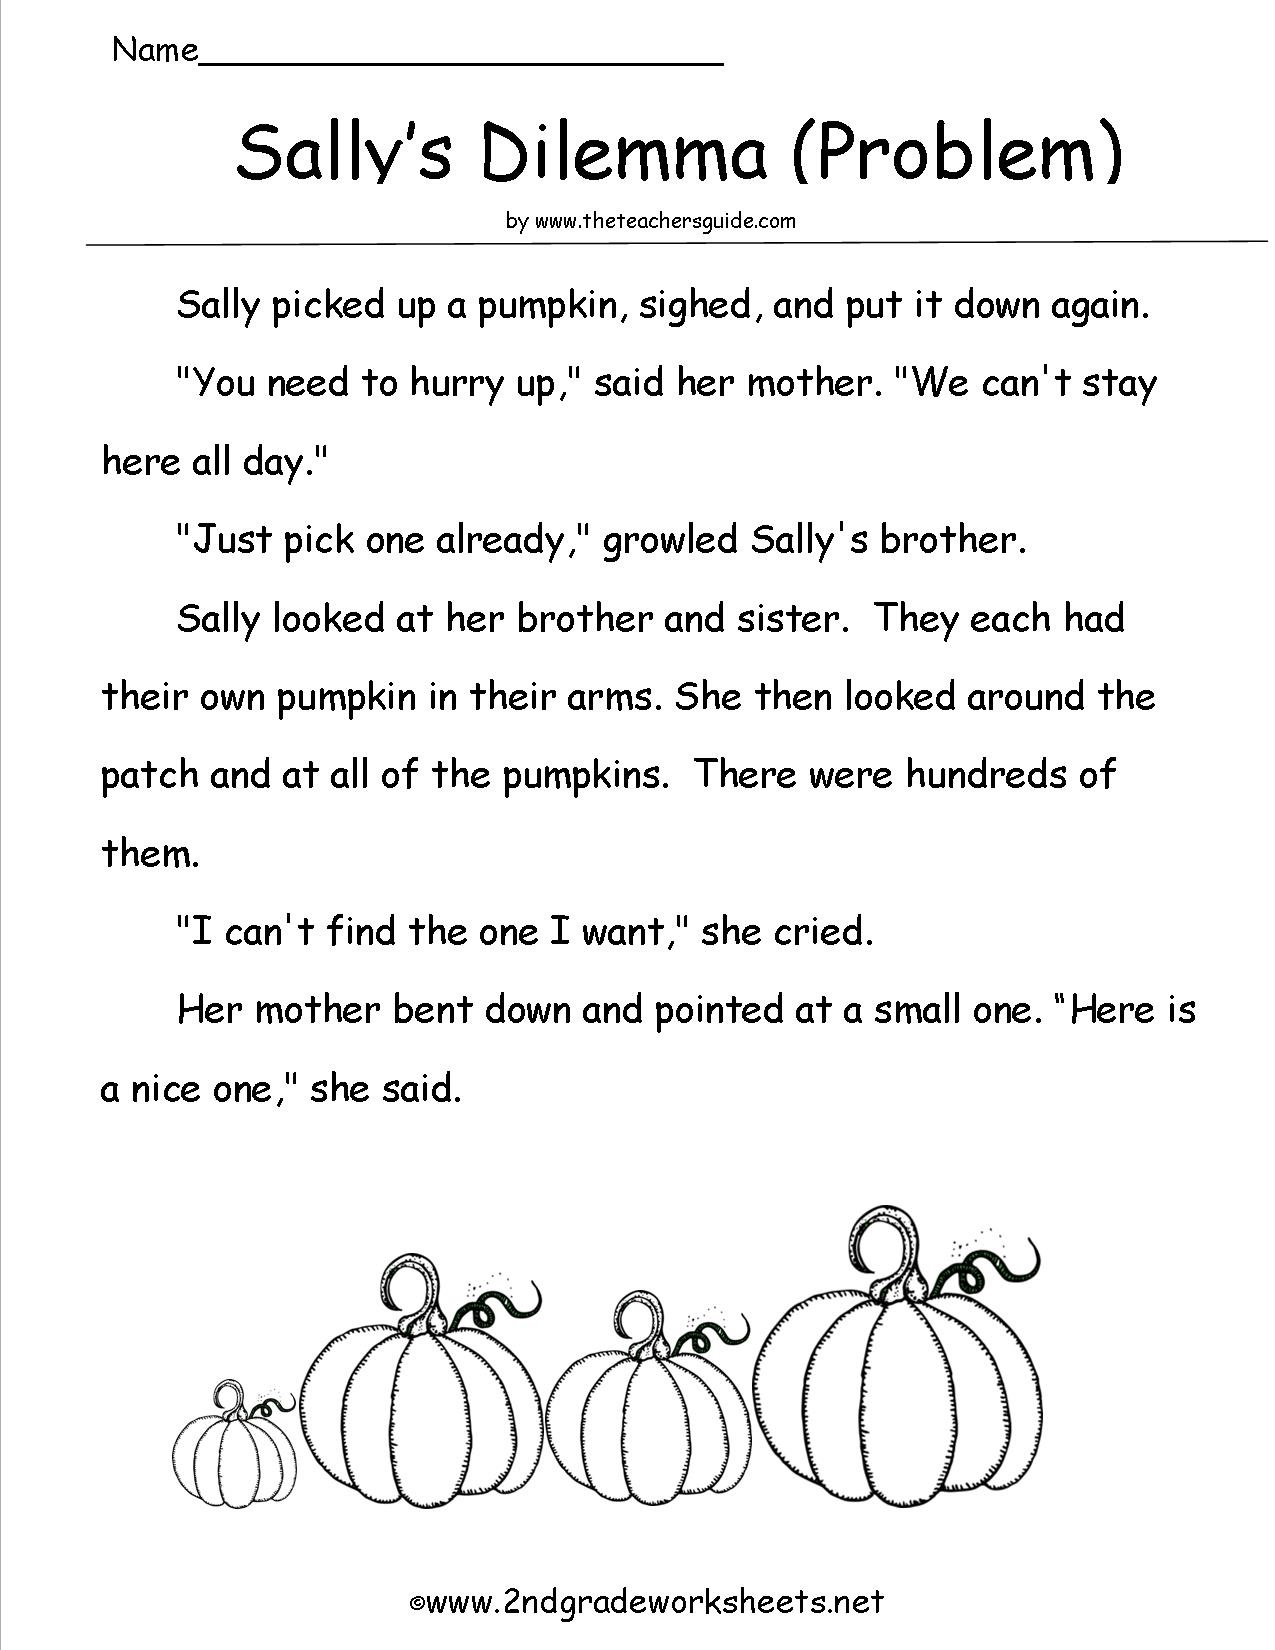 Halloween Worksheets And Printouts - Free Printable Halloween Activities